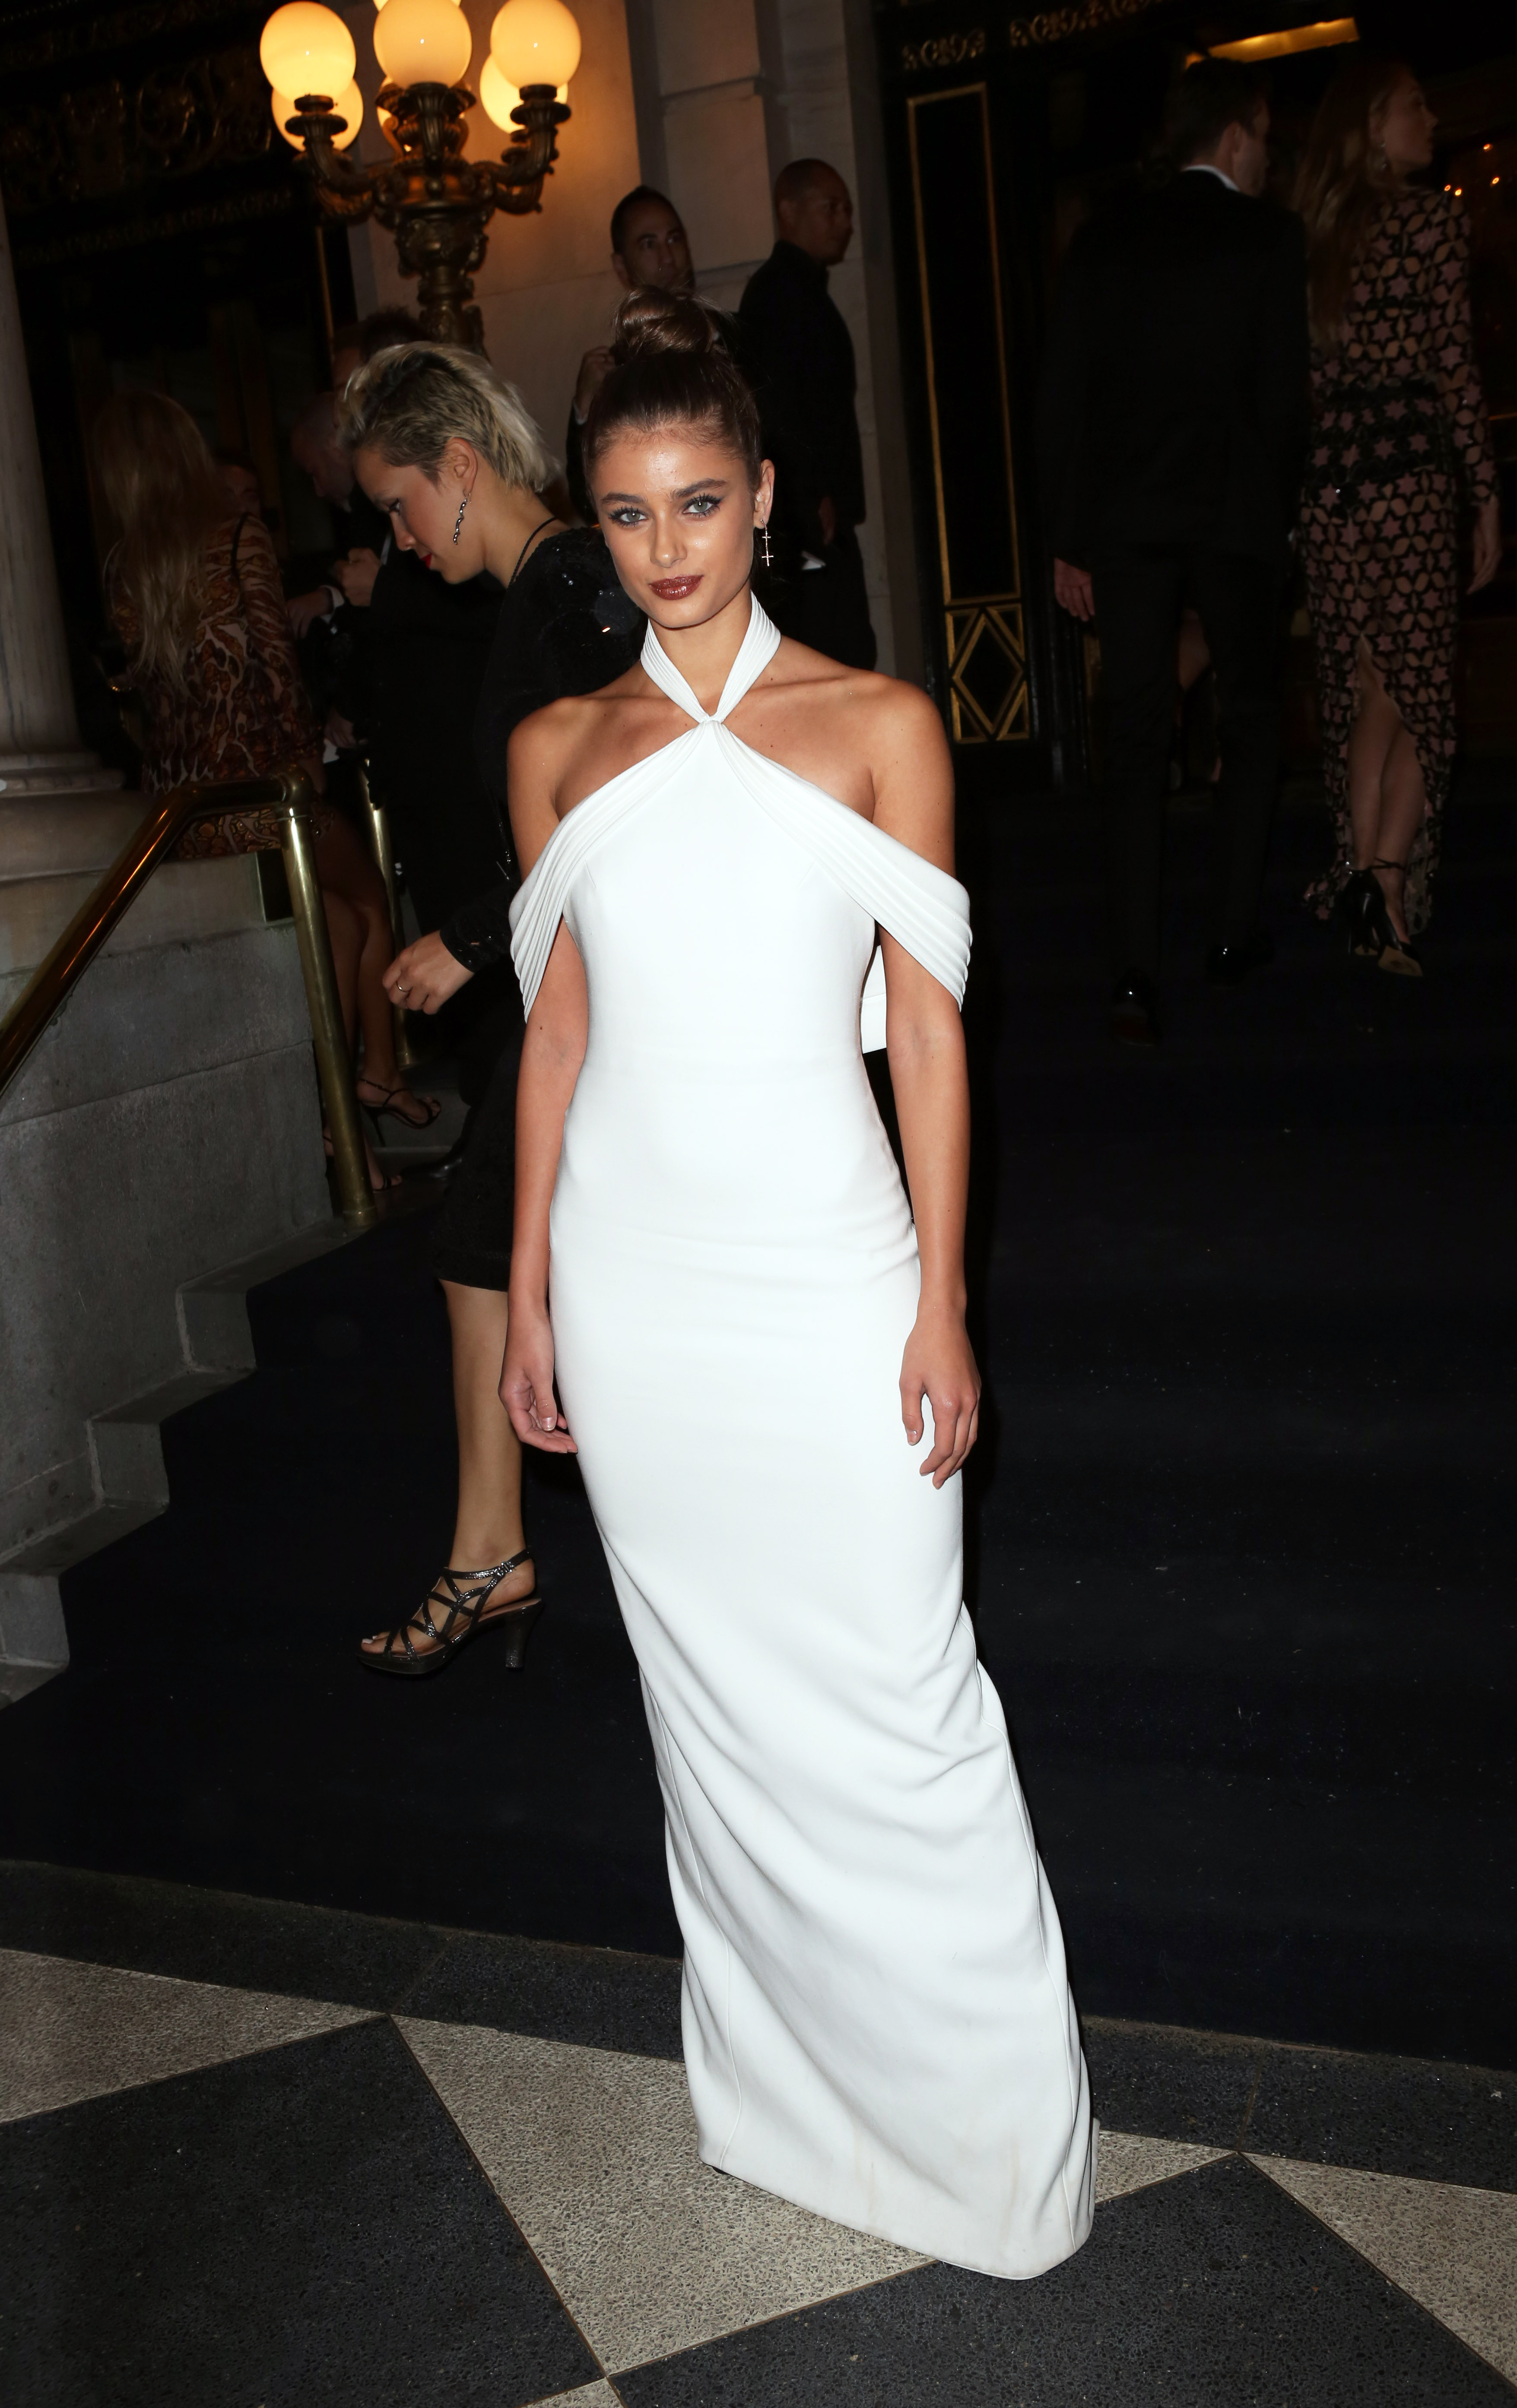 Harper's BAZAAR Celebrates 'ICONS By Carine Roitfeld' in NYC <P> Pictured: Taylor Hill <B>Ref: SPL1572808  090917  </B><BR/> Picture by: Richard Buxo / Splash News<BR/> </P><P> <B>Splash News and Pictures</B><BR/> Los Angeles:310-821-2666<BR/> New York:212-619-2666<BR/> London:870-934-2666<BR/> <span id=